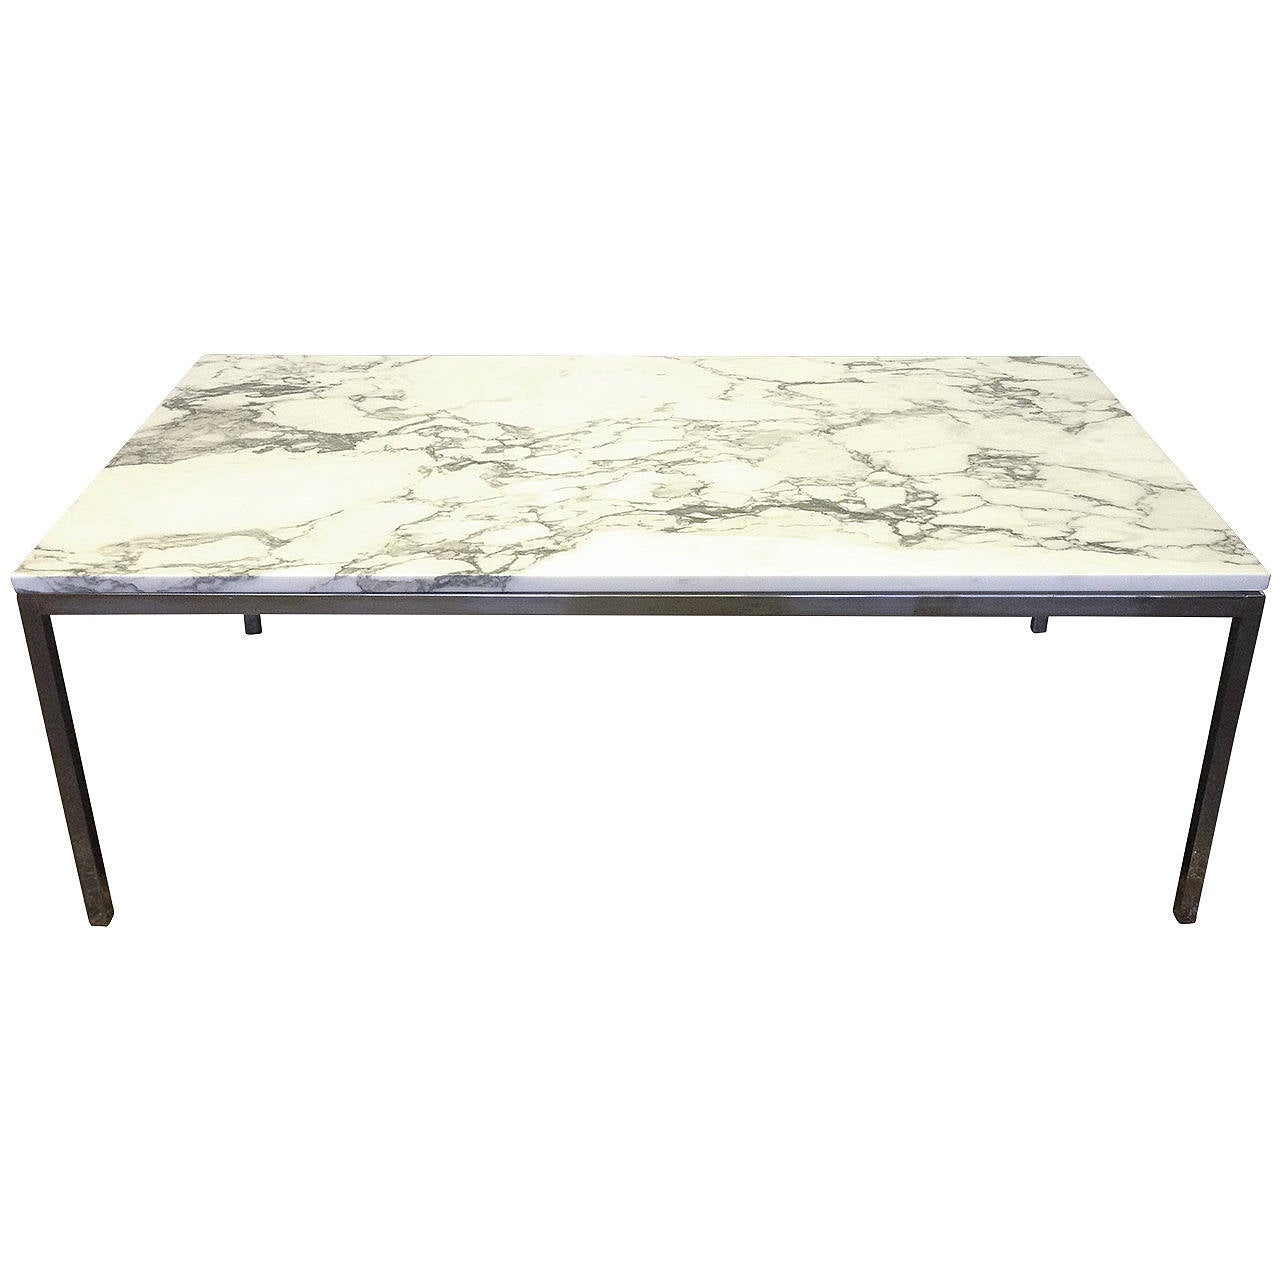 Florence knoll coffee table in white marble at 1stdibs Florence knoll coffee table